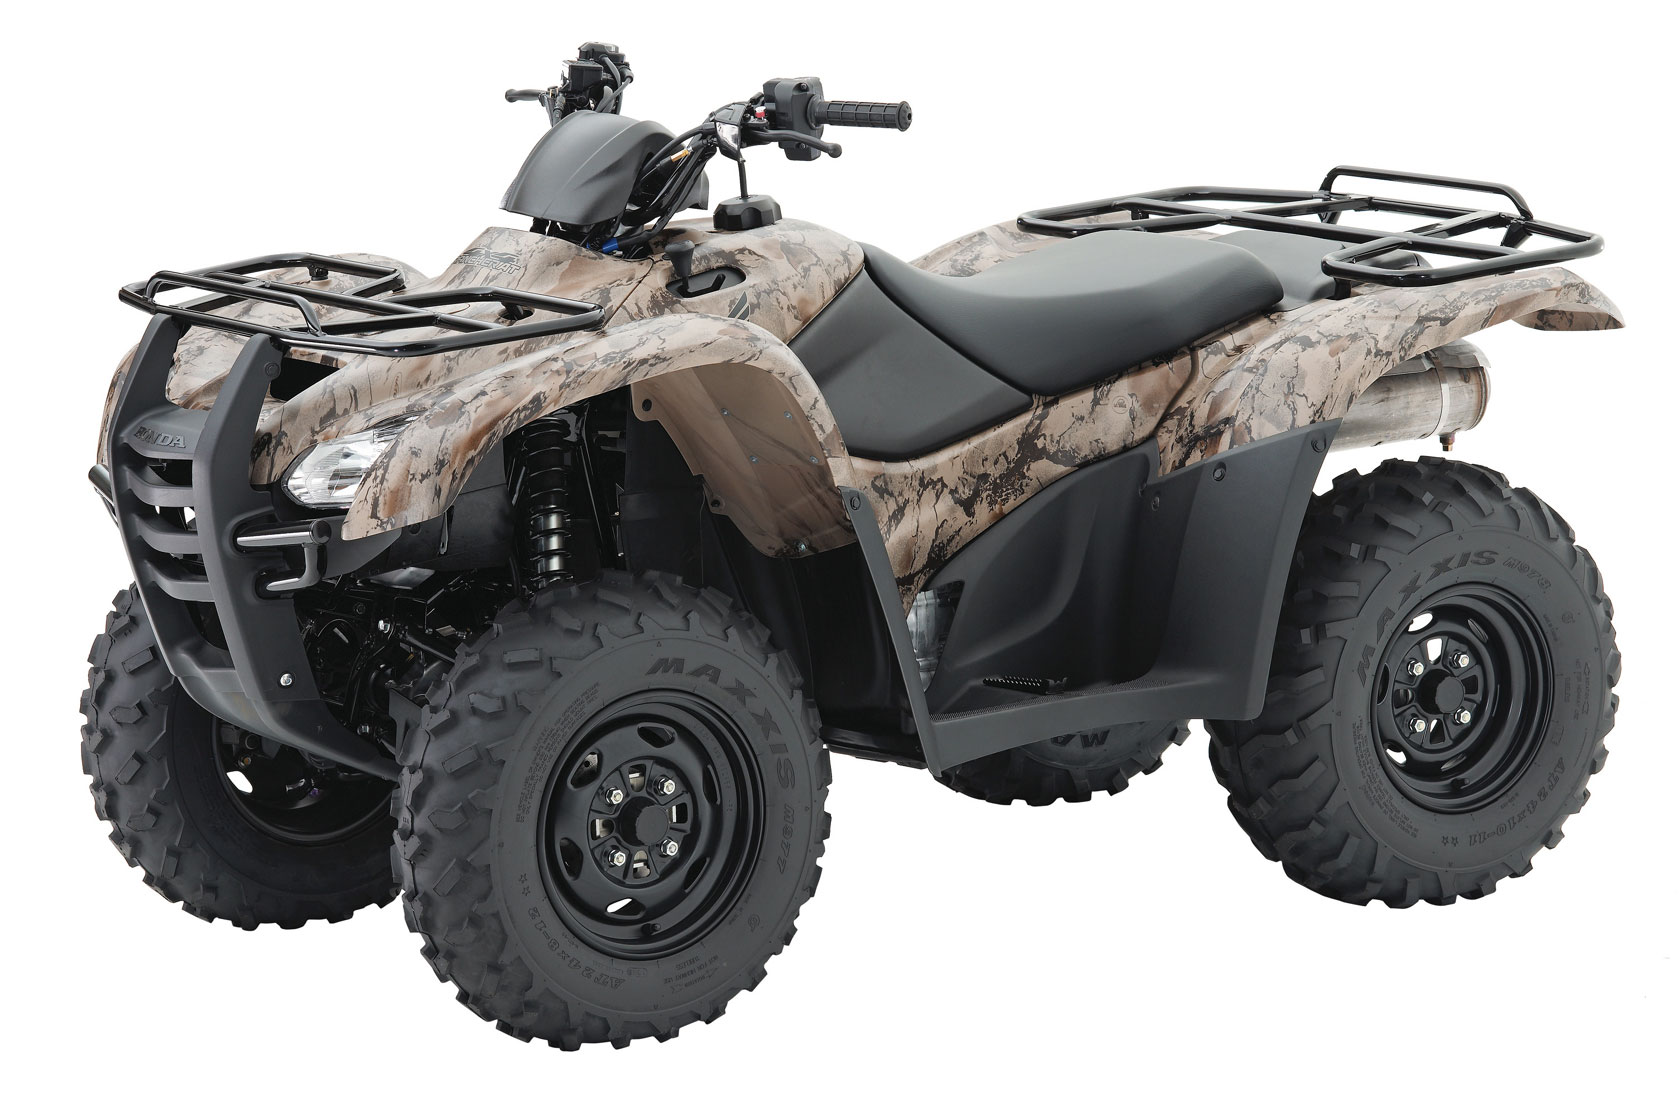 HONDA FourTrax Rancher AT TRX420FA - 2008, 2009 - autoevolution